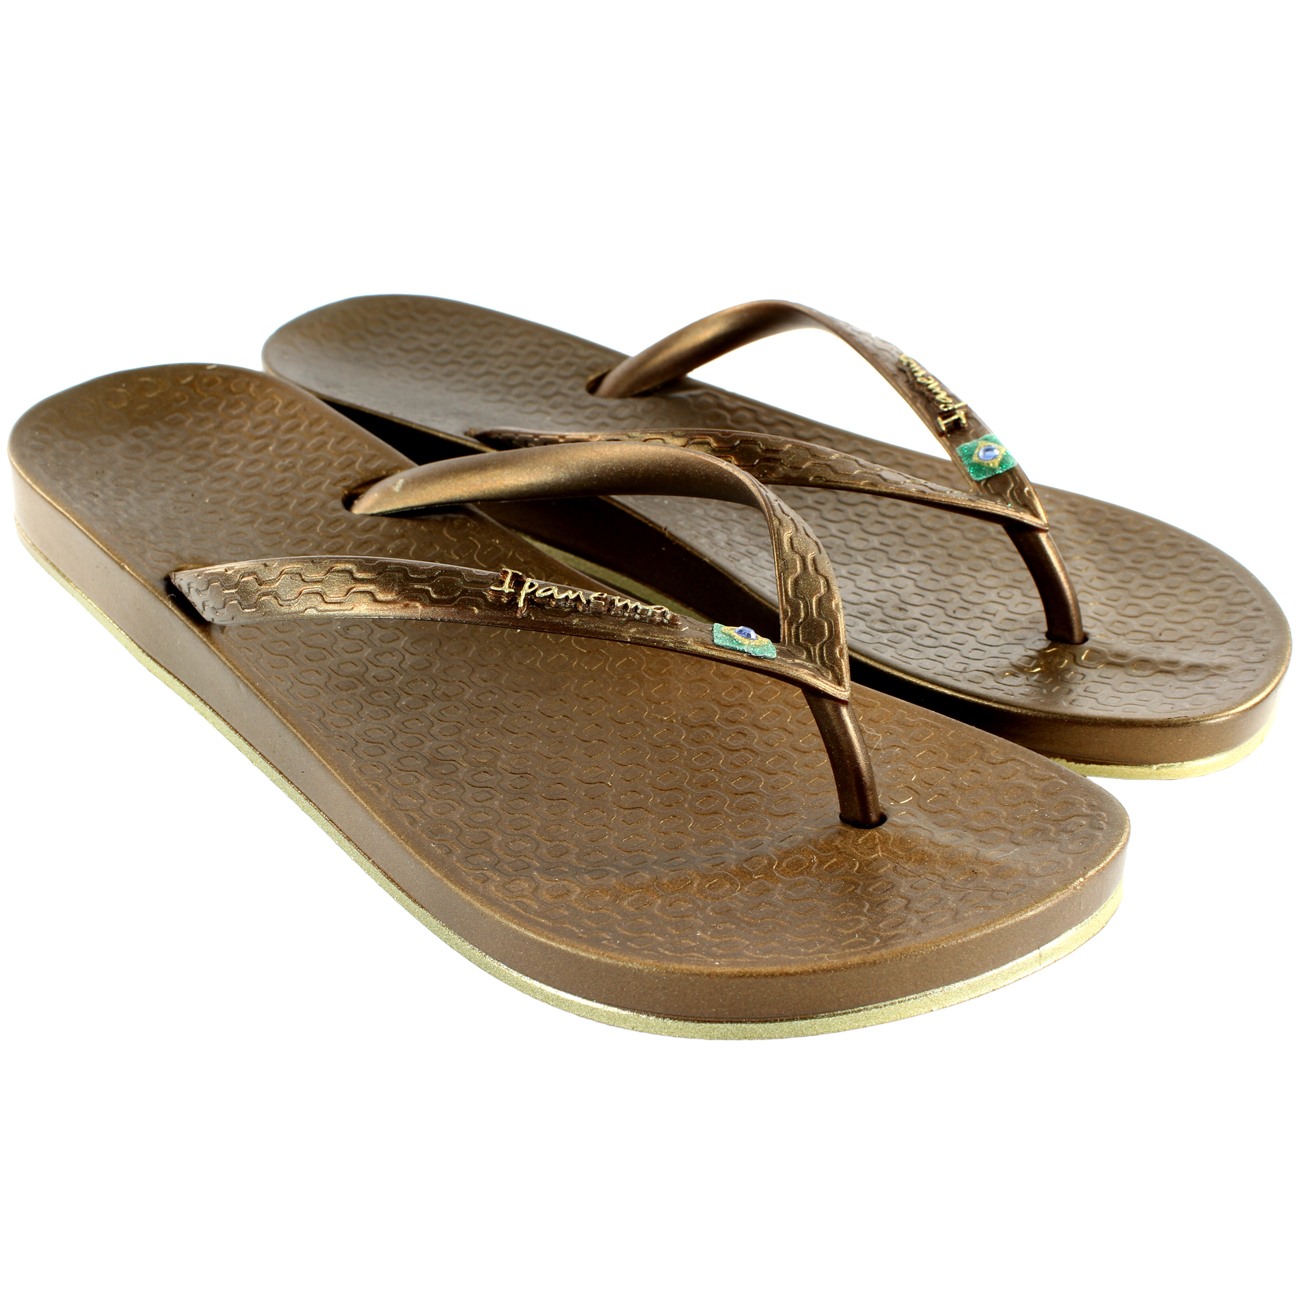 View the largest selection of FitFlop™ sandals, shoes, clogs, sneakers and boots for men and women.